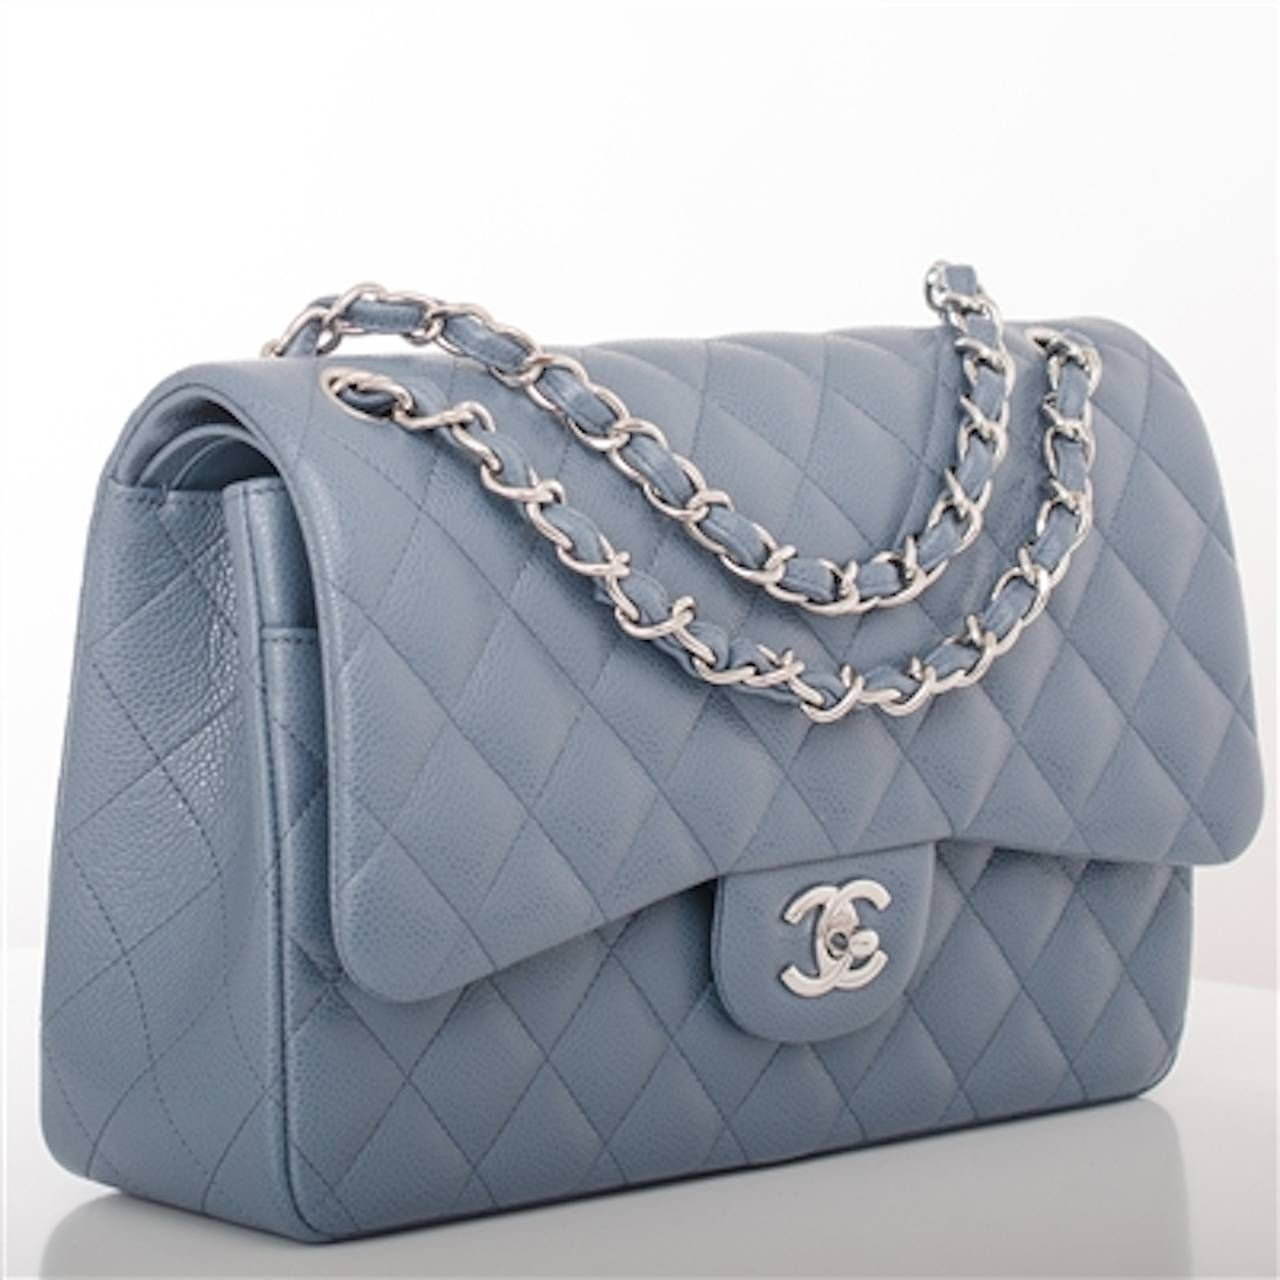 a1addb1b14a35 Chanel Blue Quilted Caviar Jumbo Classic 2.55 Double Flap Bag ...